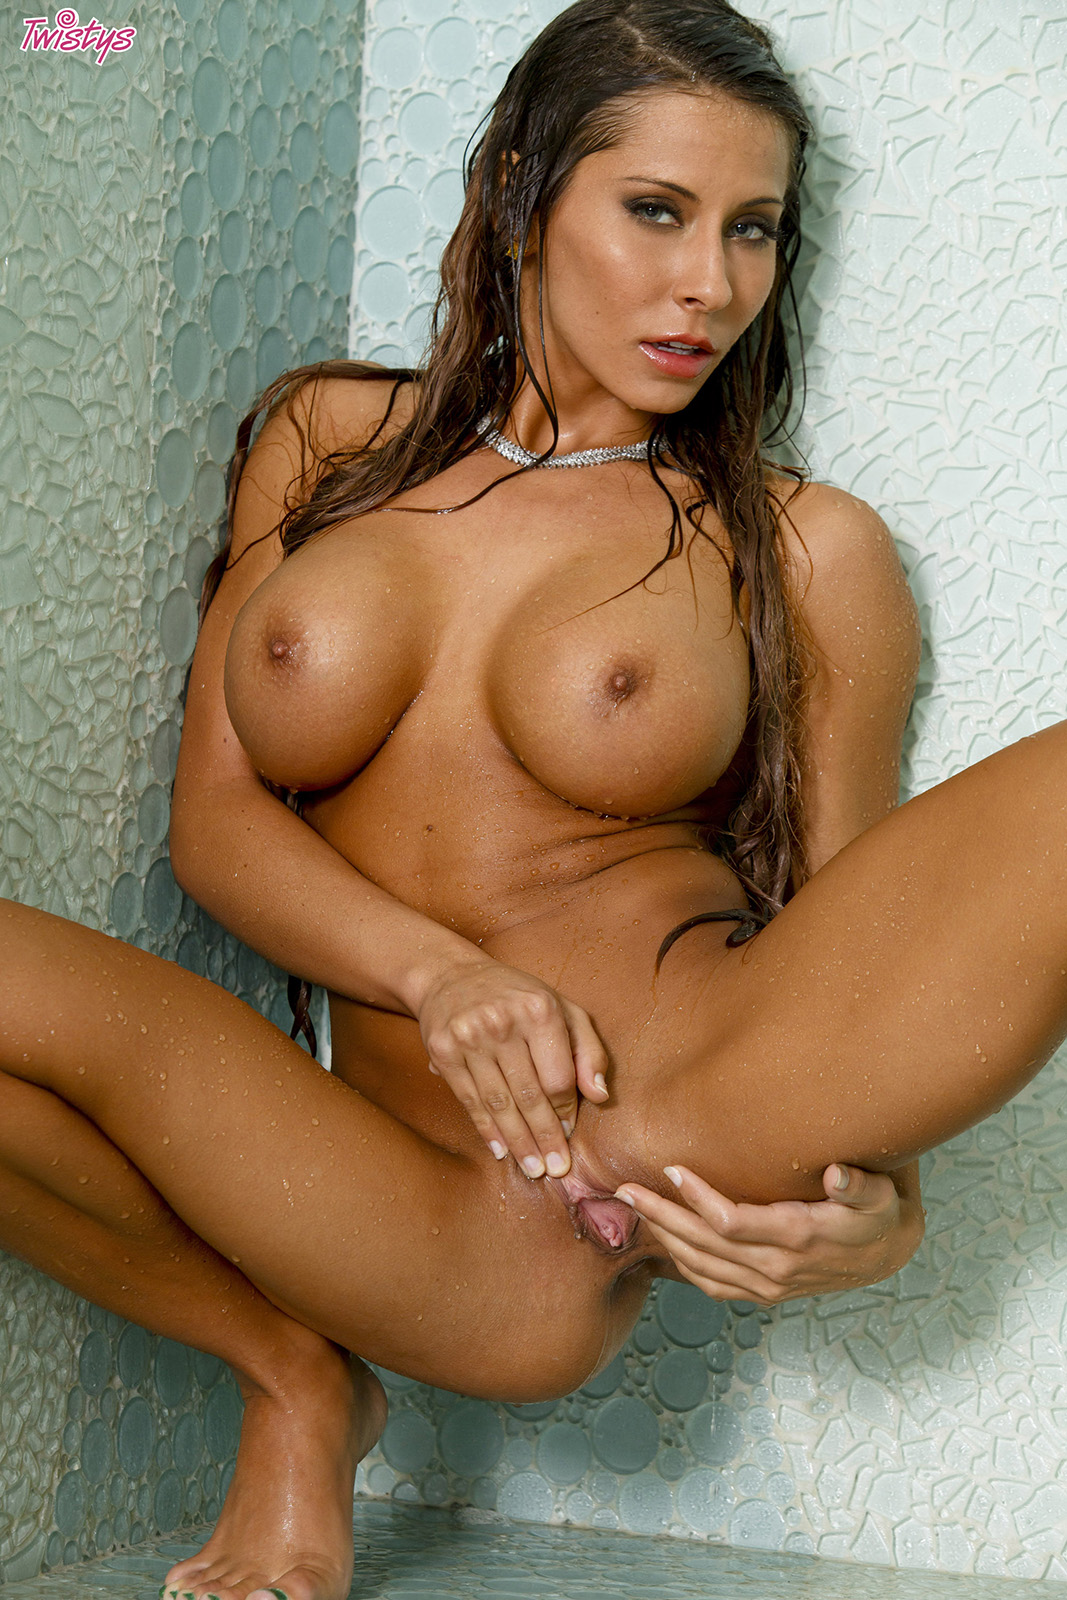 madison ivy likes to fuck her wet pussy at the shower